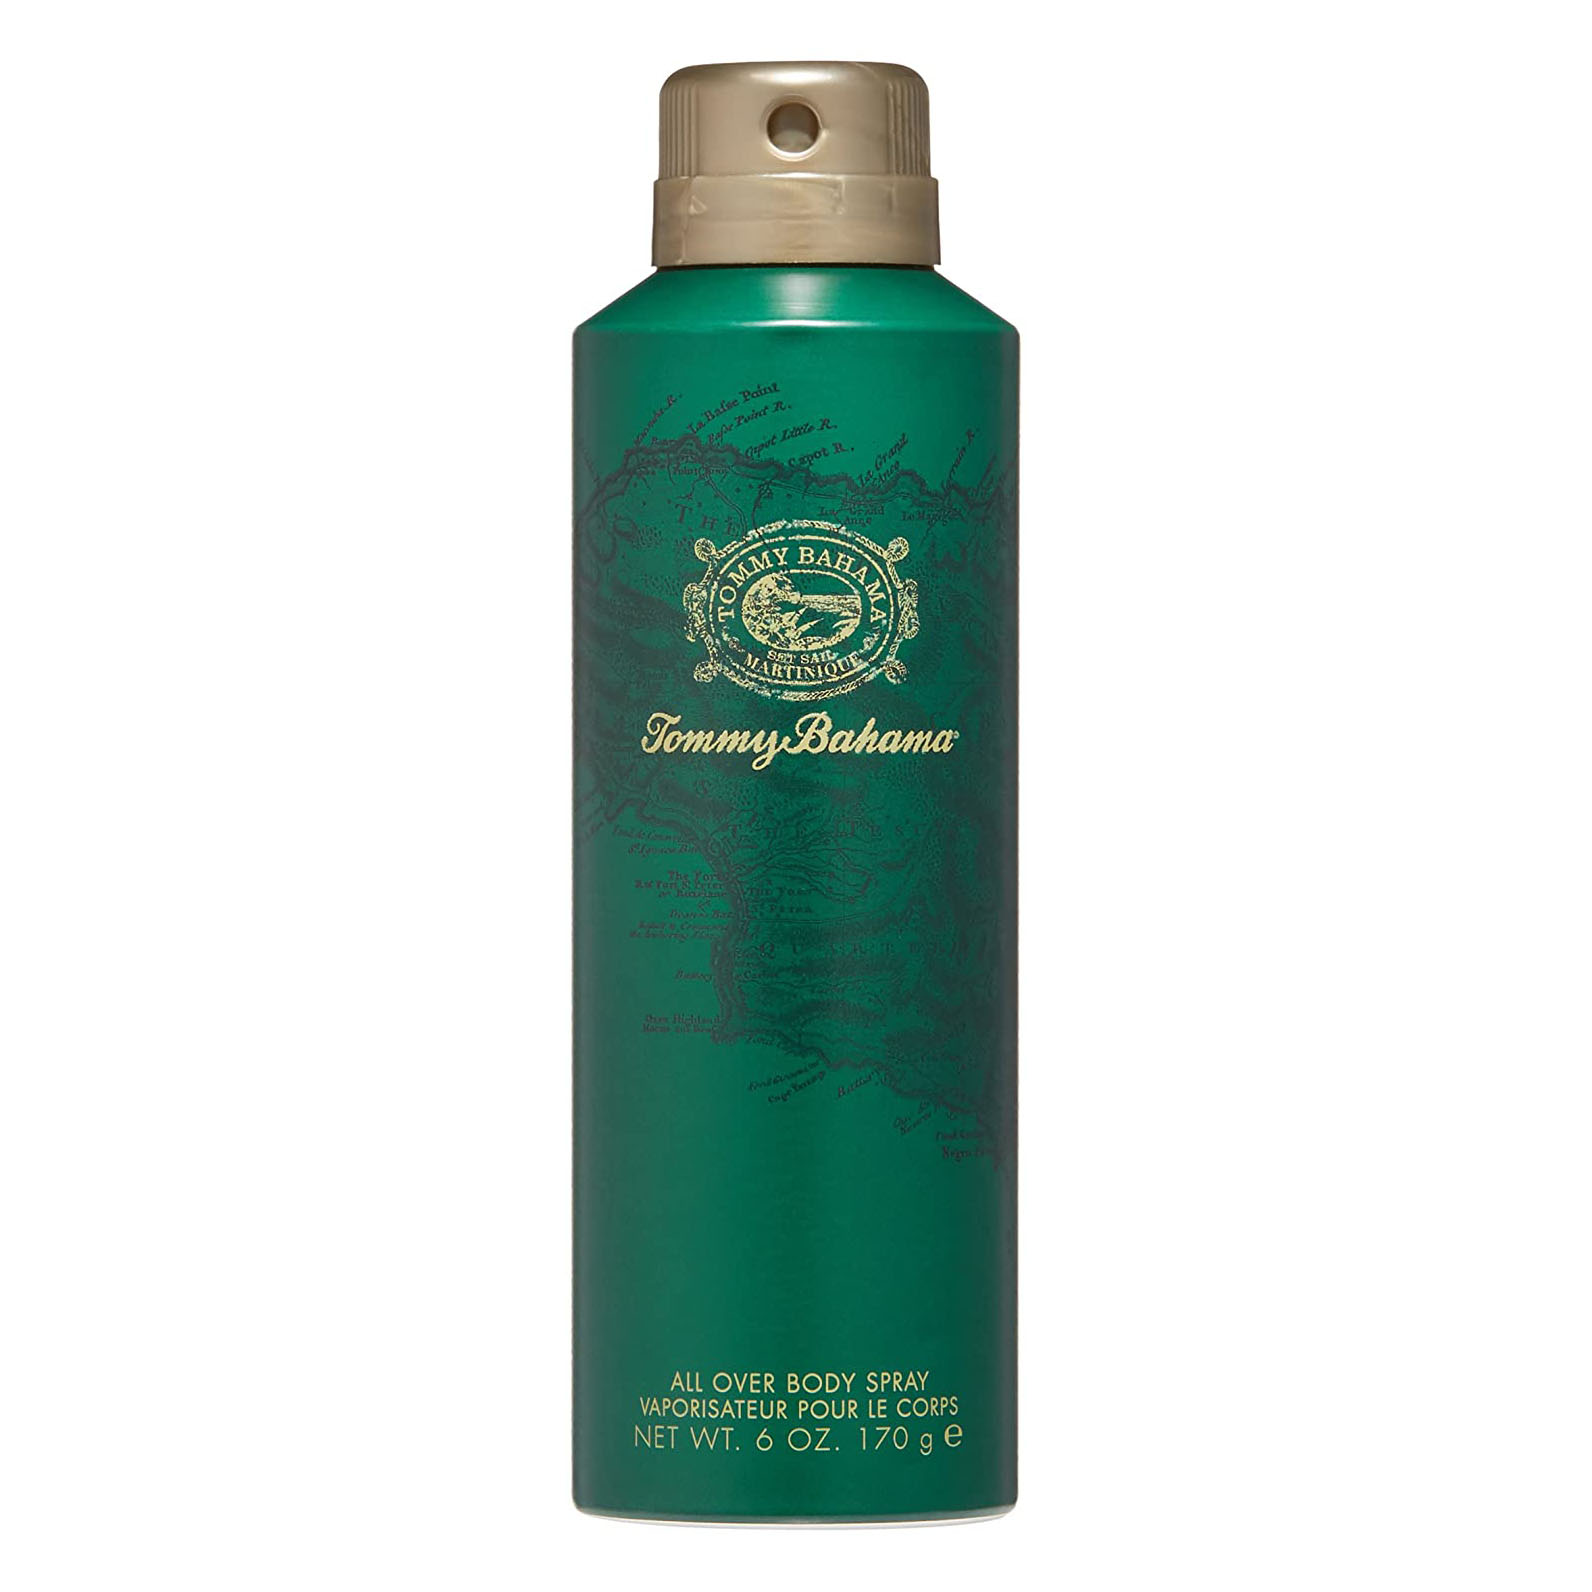 Tommy Bahama Set Sail Martinique All Over Body Spray